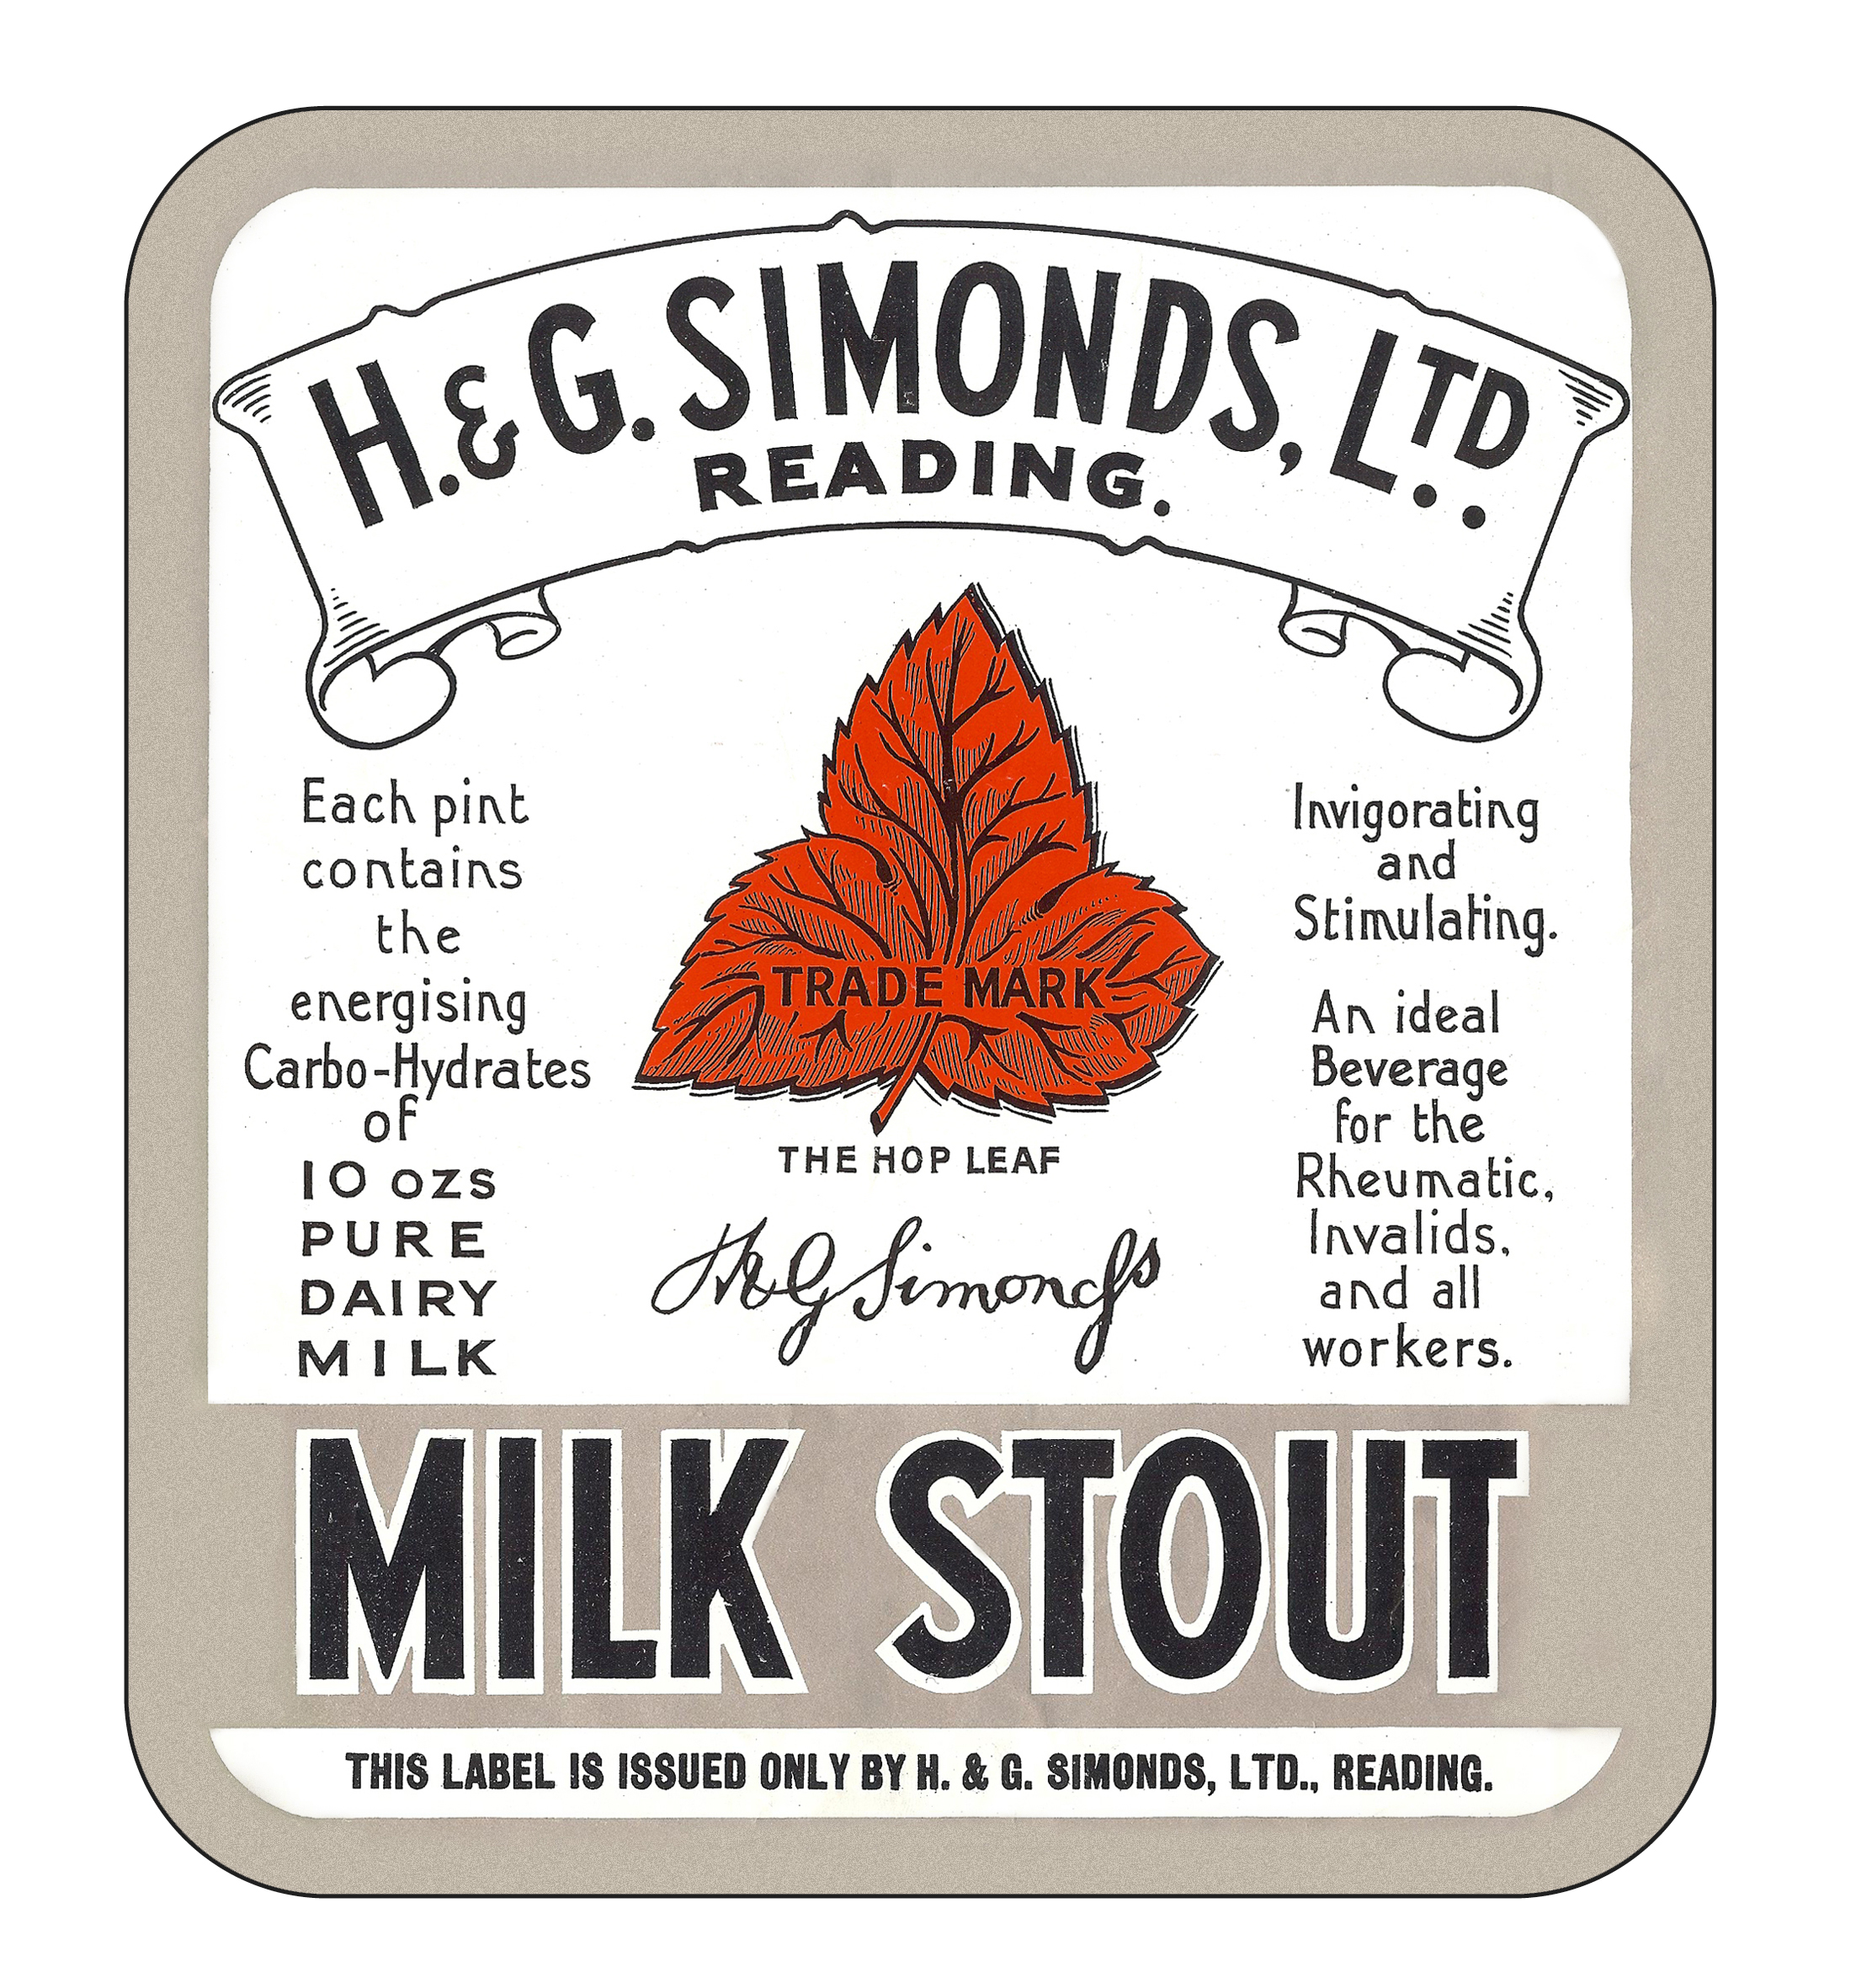 Milk Stout display label 24.2 x 27.4cms